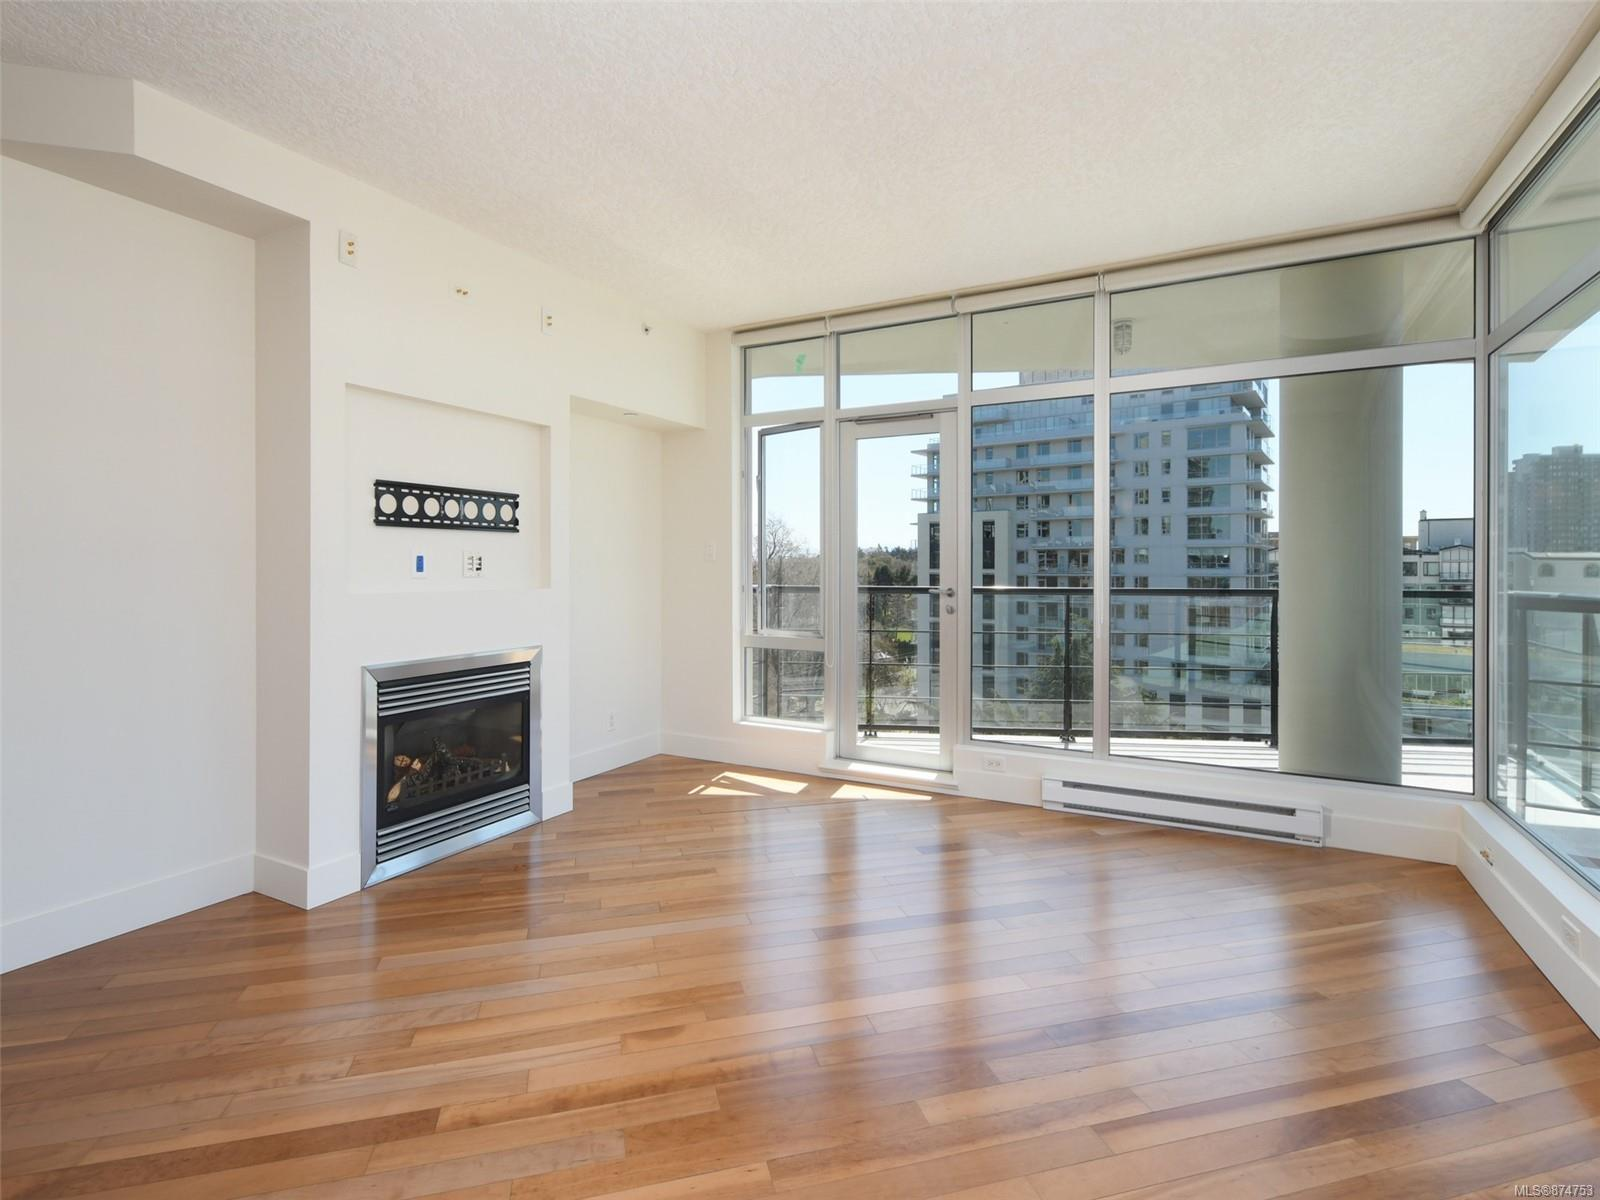 Photo 19 at S906 - 737 Humboldt Street, Downtown, Victoria